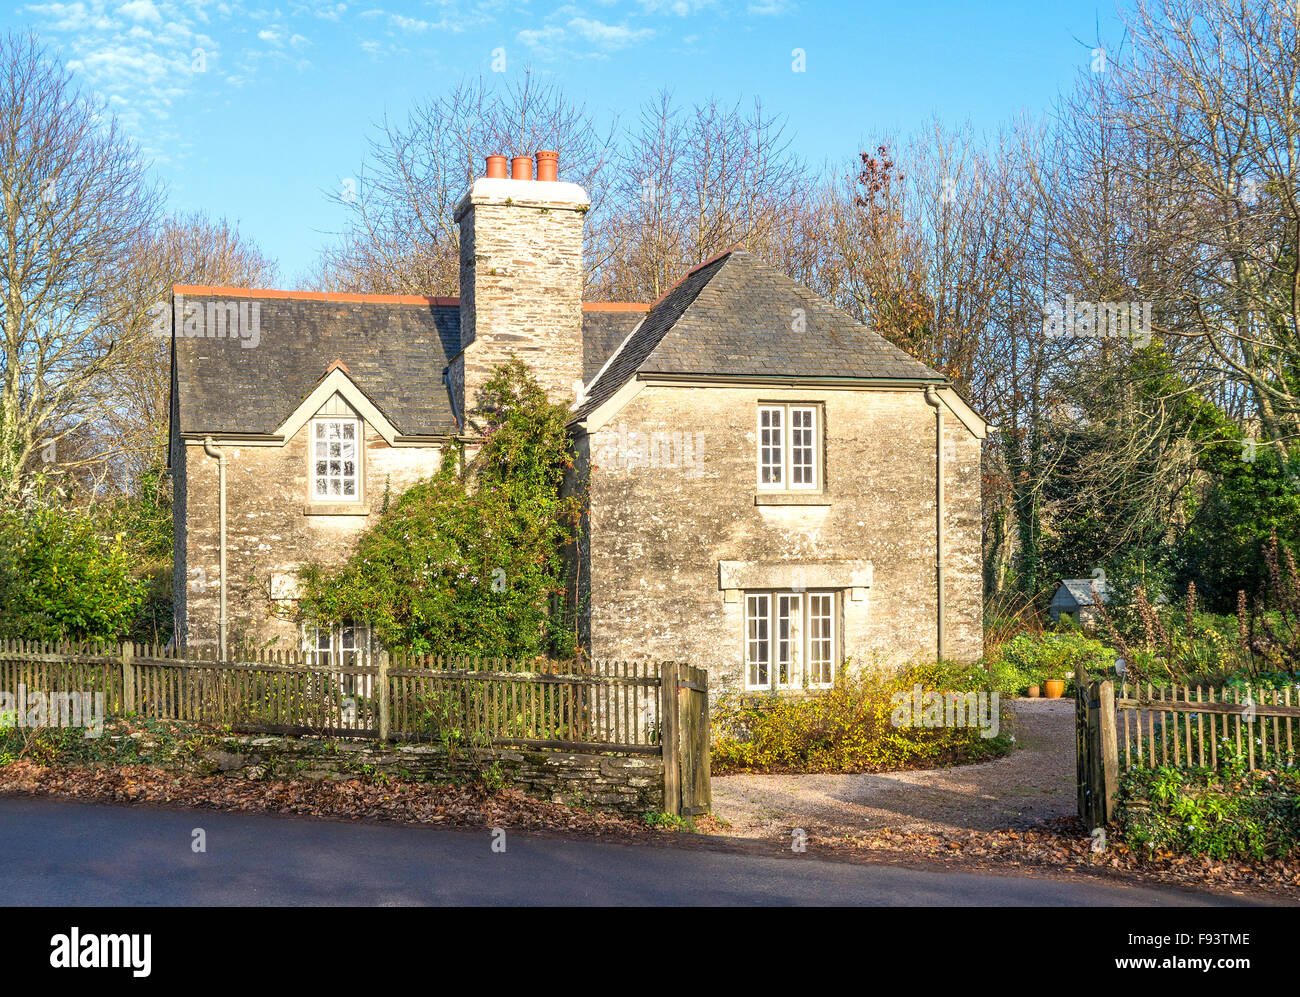 An old granite stone cottage near trelissick in Cornwall, UK - Stock Image